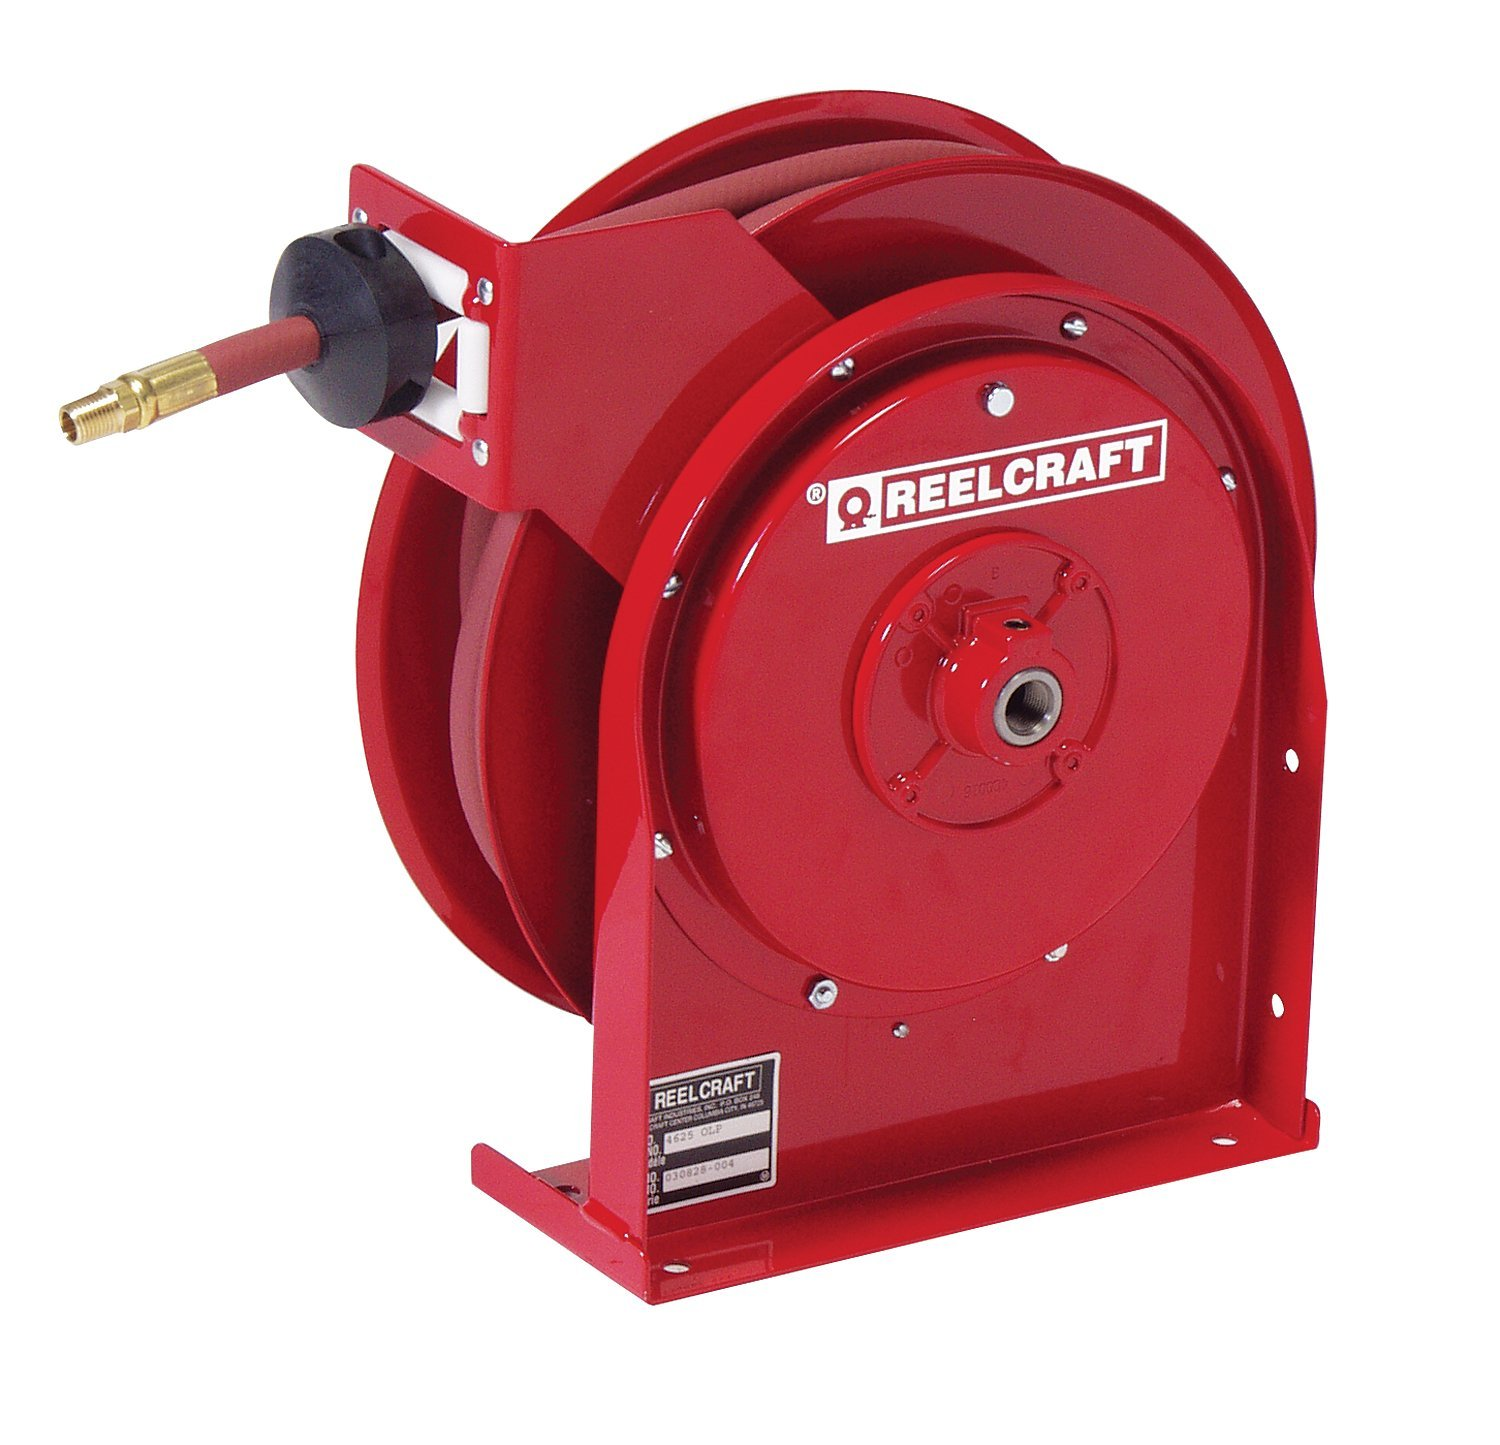 "Reelcraft 5635-OLP Premium Duty Spring Retractable Hose Reel, 3/8"" by 35 ft."